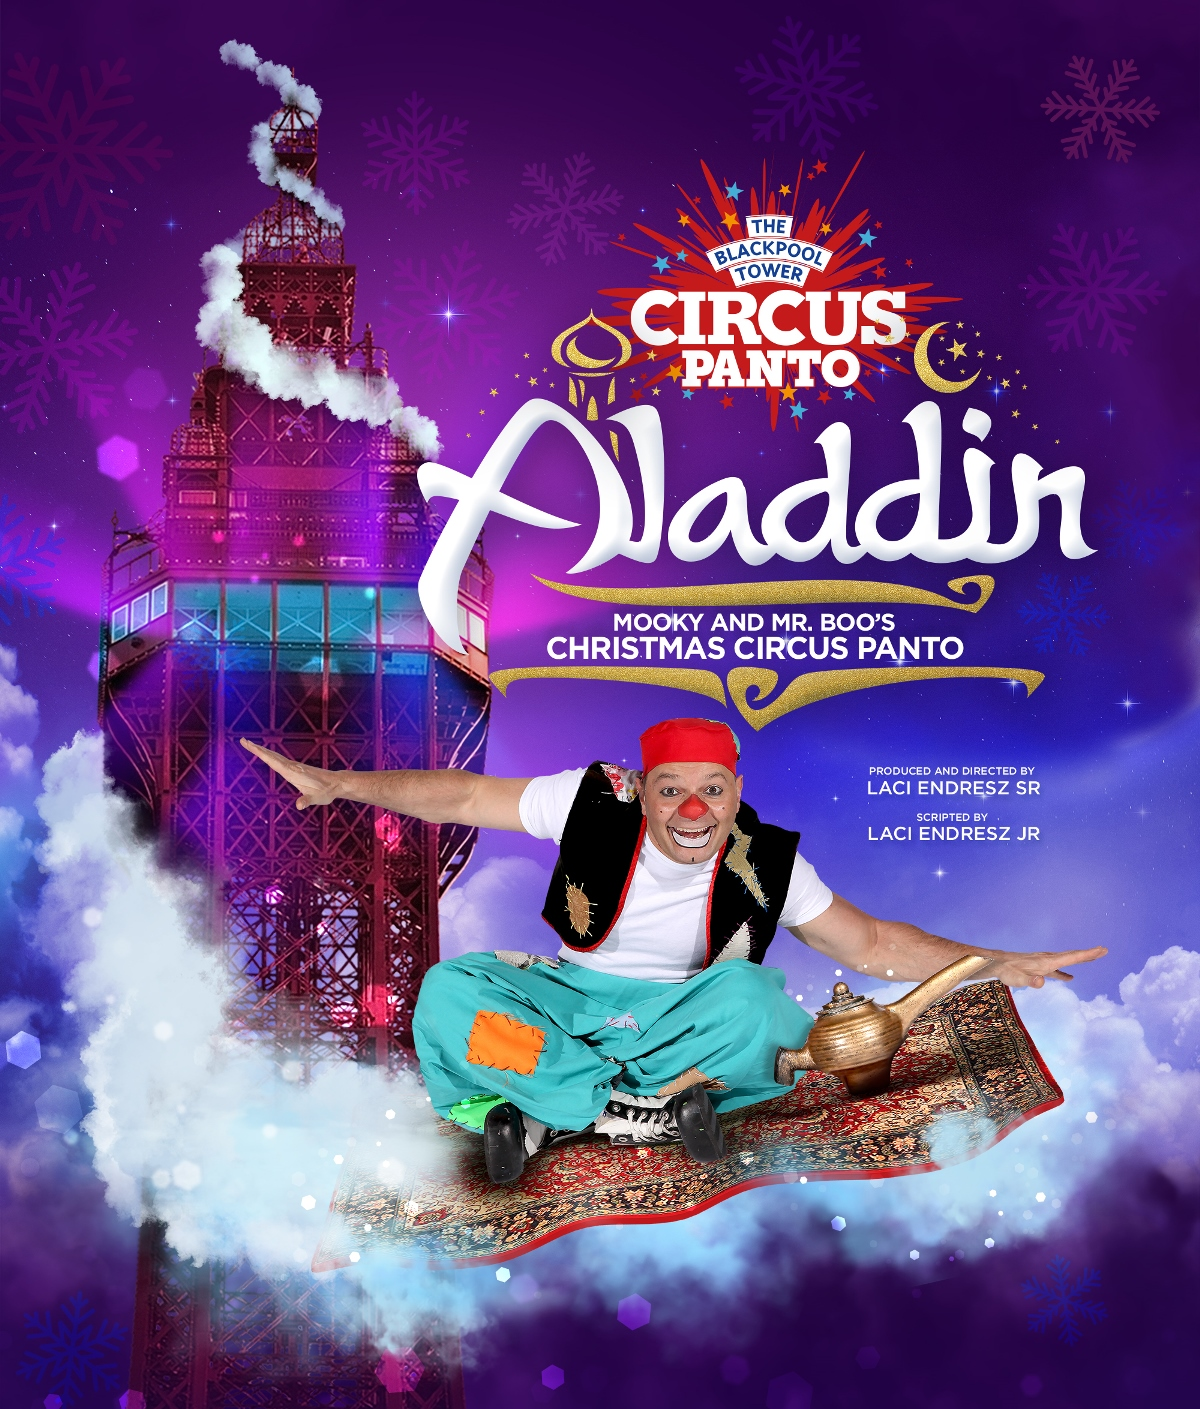 'Tis the Season for A Circus Panto at The Blackpool Tower